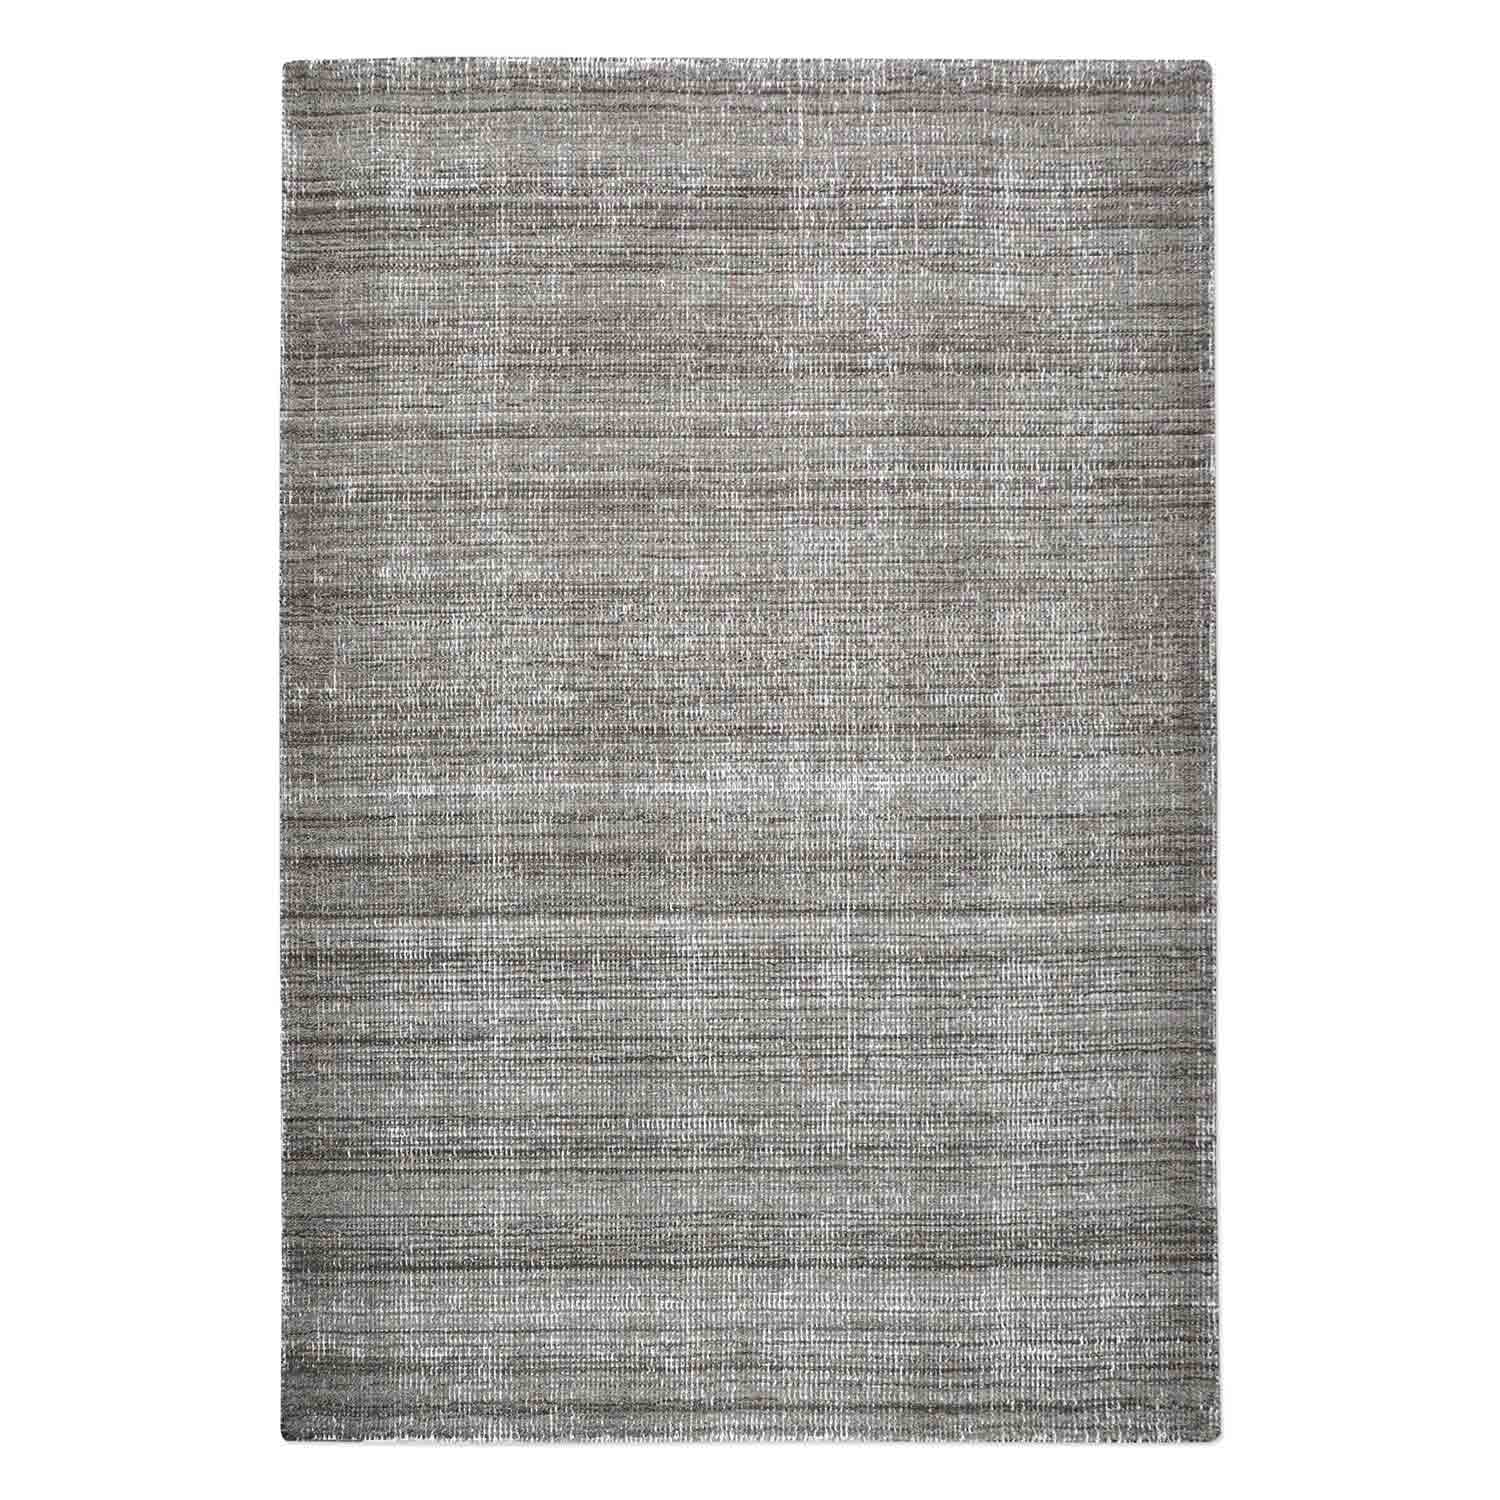 Uttermost Medanos 8 x 10 Rug - Charcoal